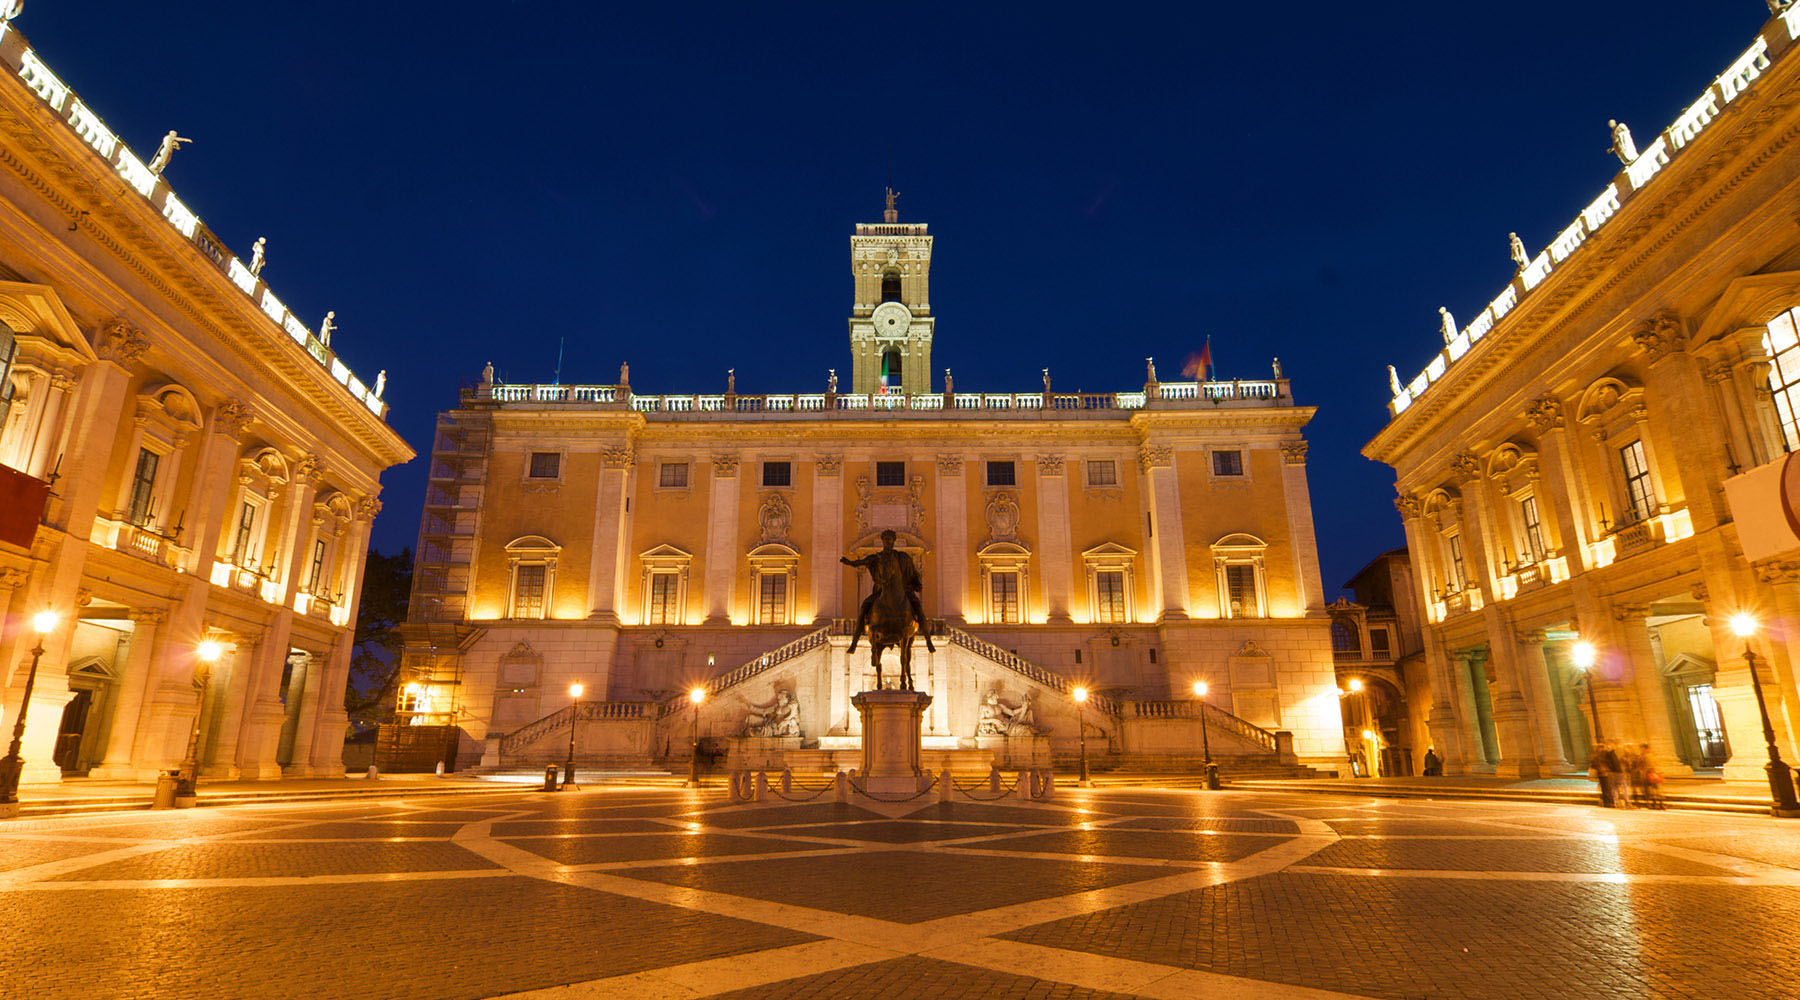 7-Night Italy And Malta Voyage & 3-Night Post Rome Stay